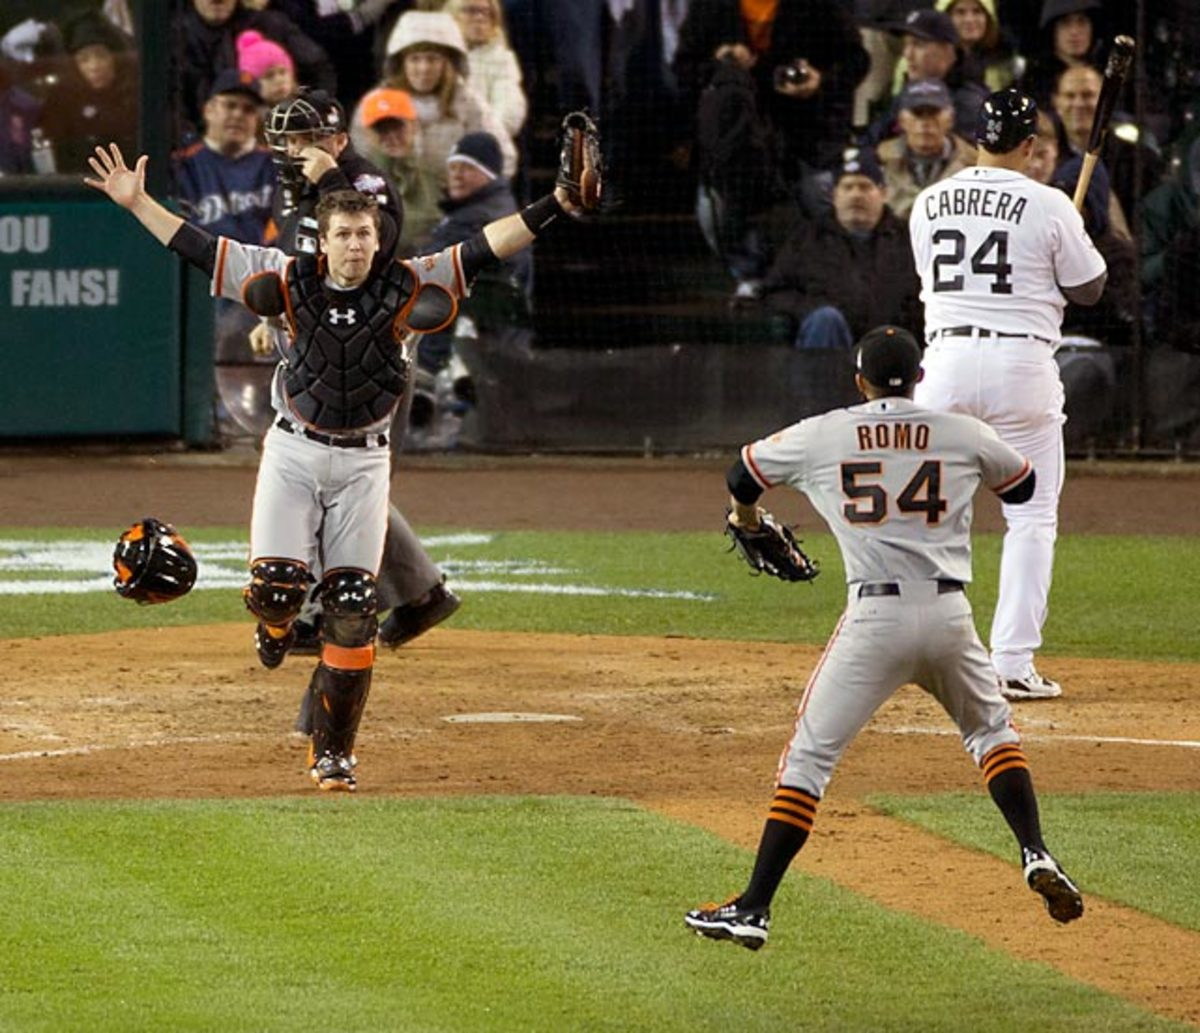 Giants defeat Tigers, 4-0